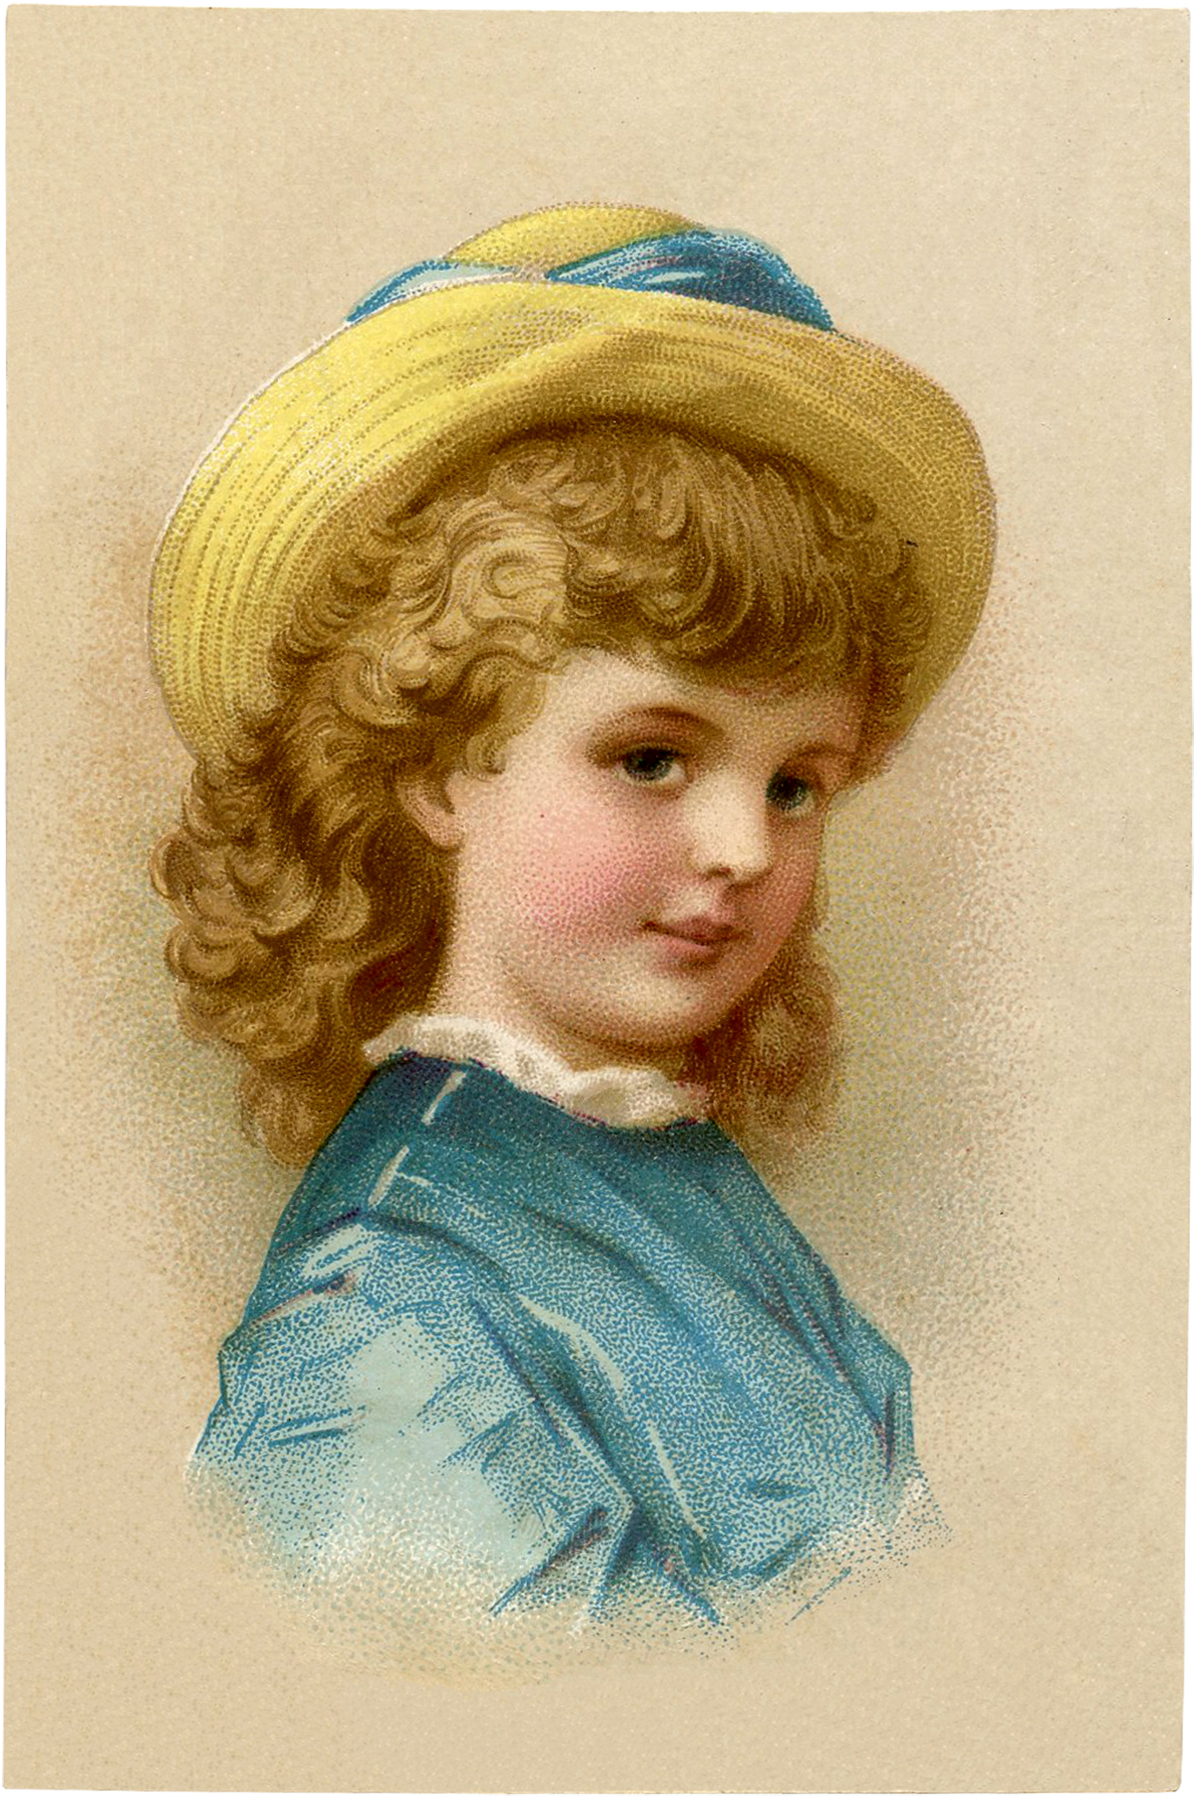 Vintage Child with Hat Image